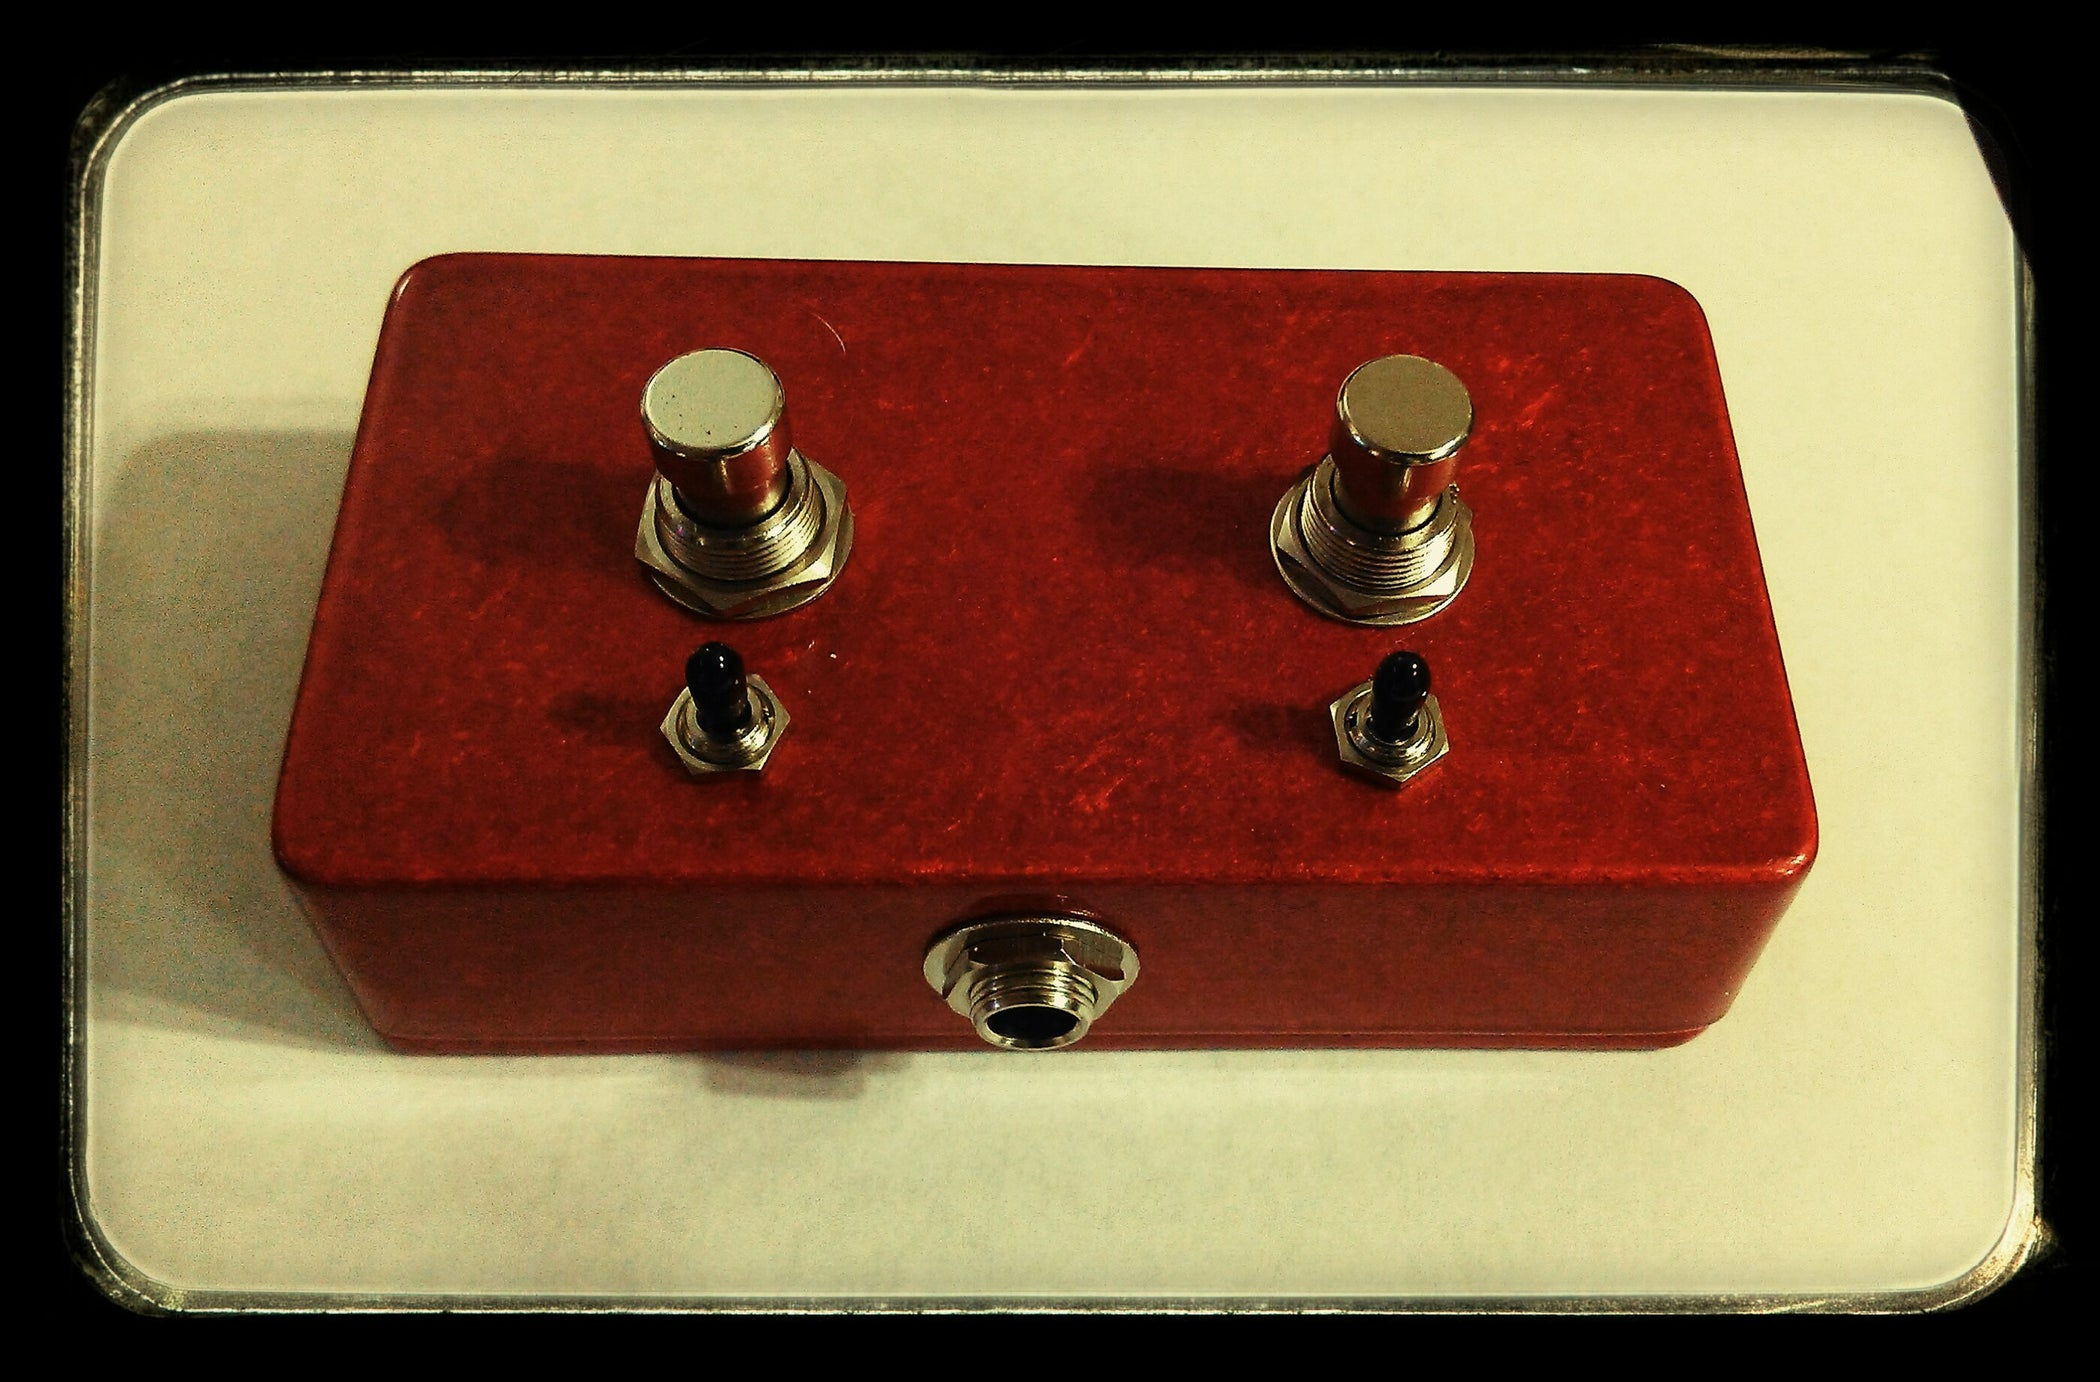 Boss Fs 6 Clone Build Your Own 7 Steps Home Gt Switches Single Pole Toggle Switch